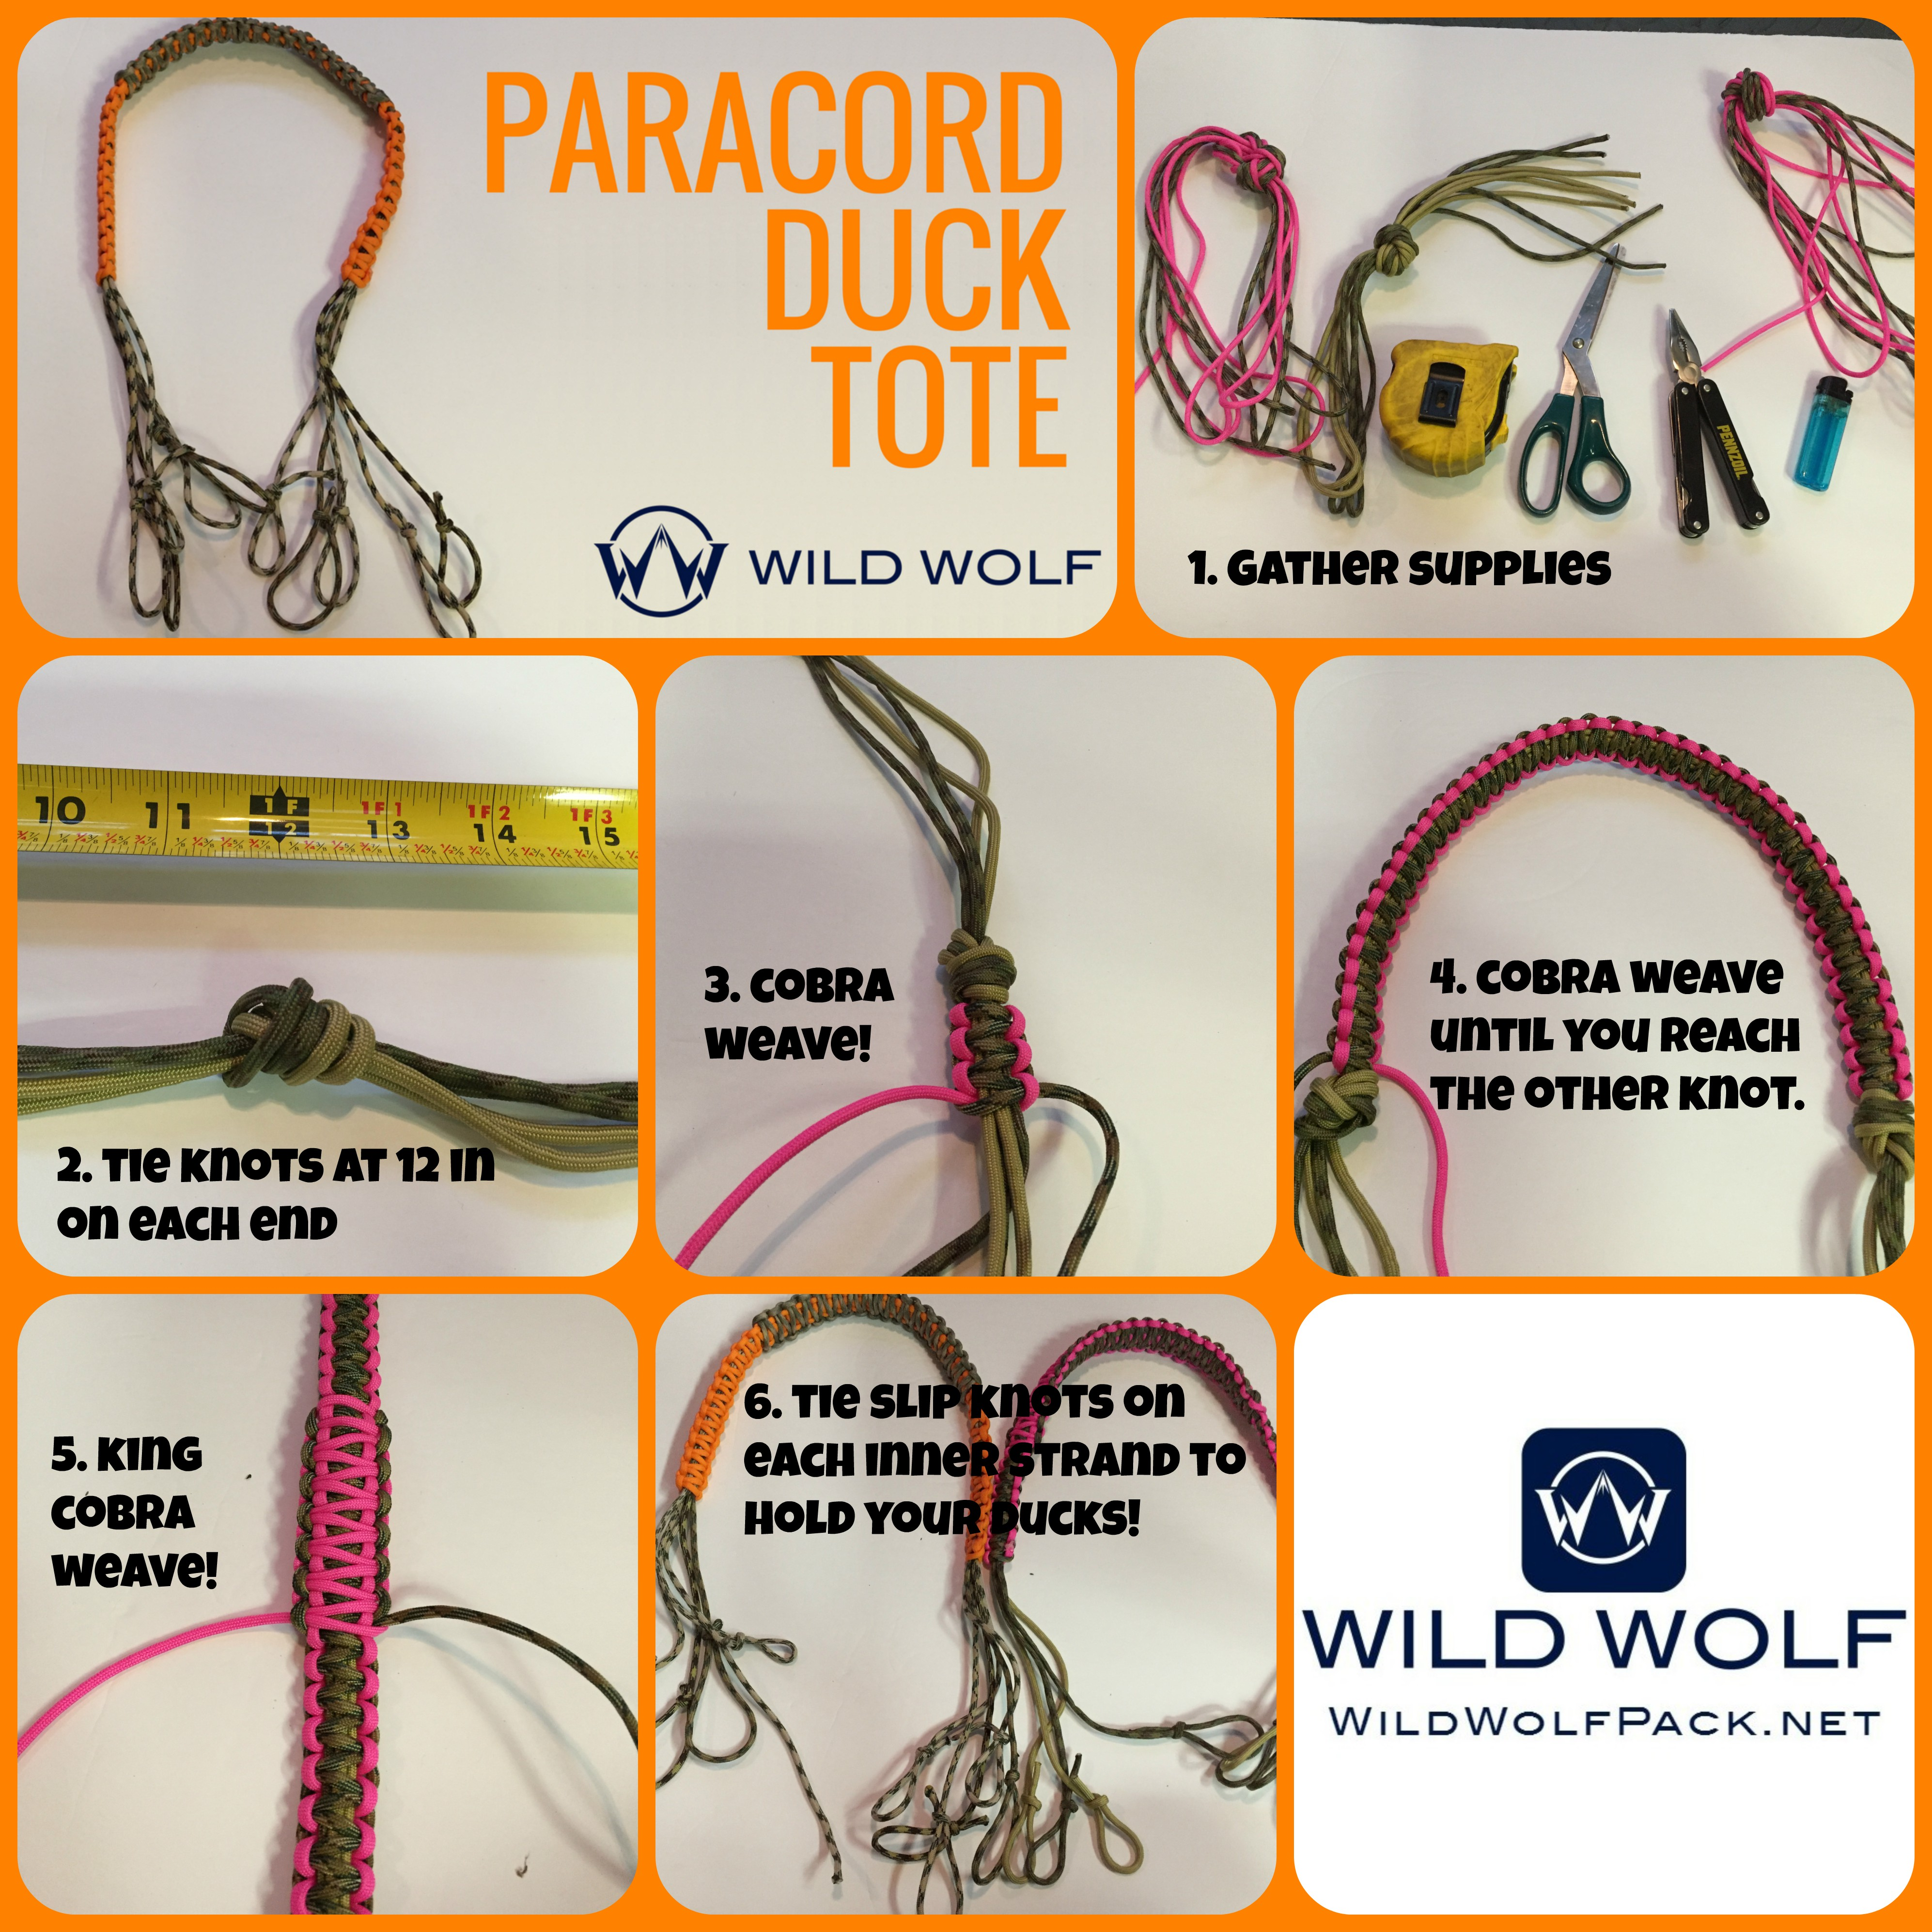 Paracord duck tote – how to diy | wild wolf pack.